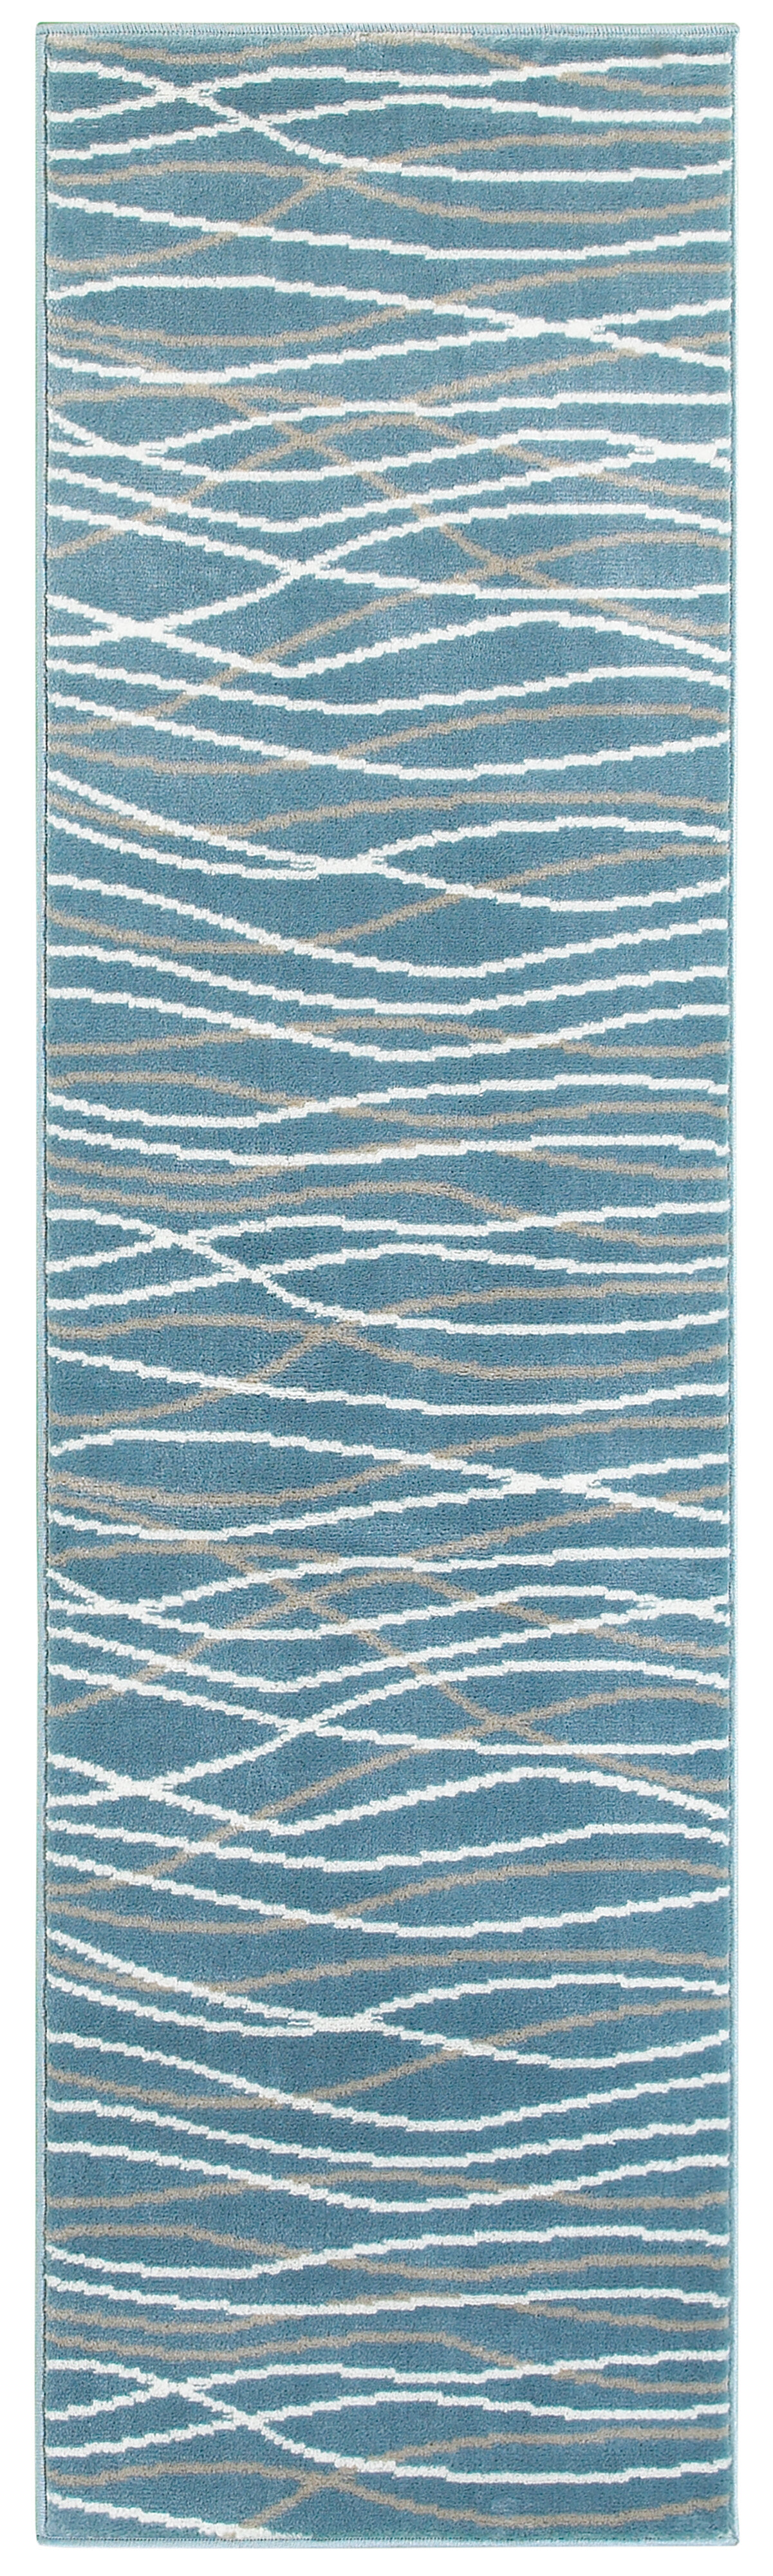 Orren Ellis Ky Abstract Teal Area Rug Reviews Wayfair